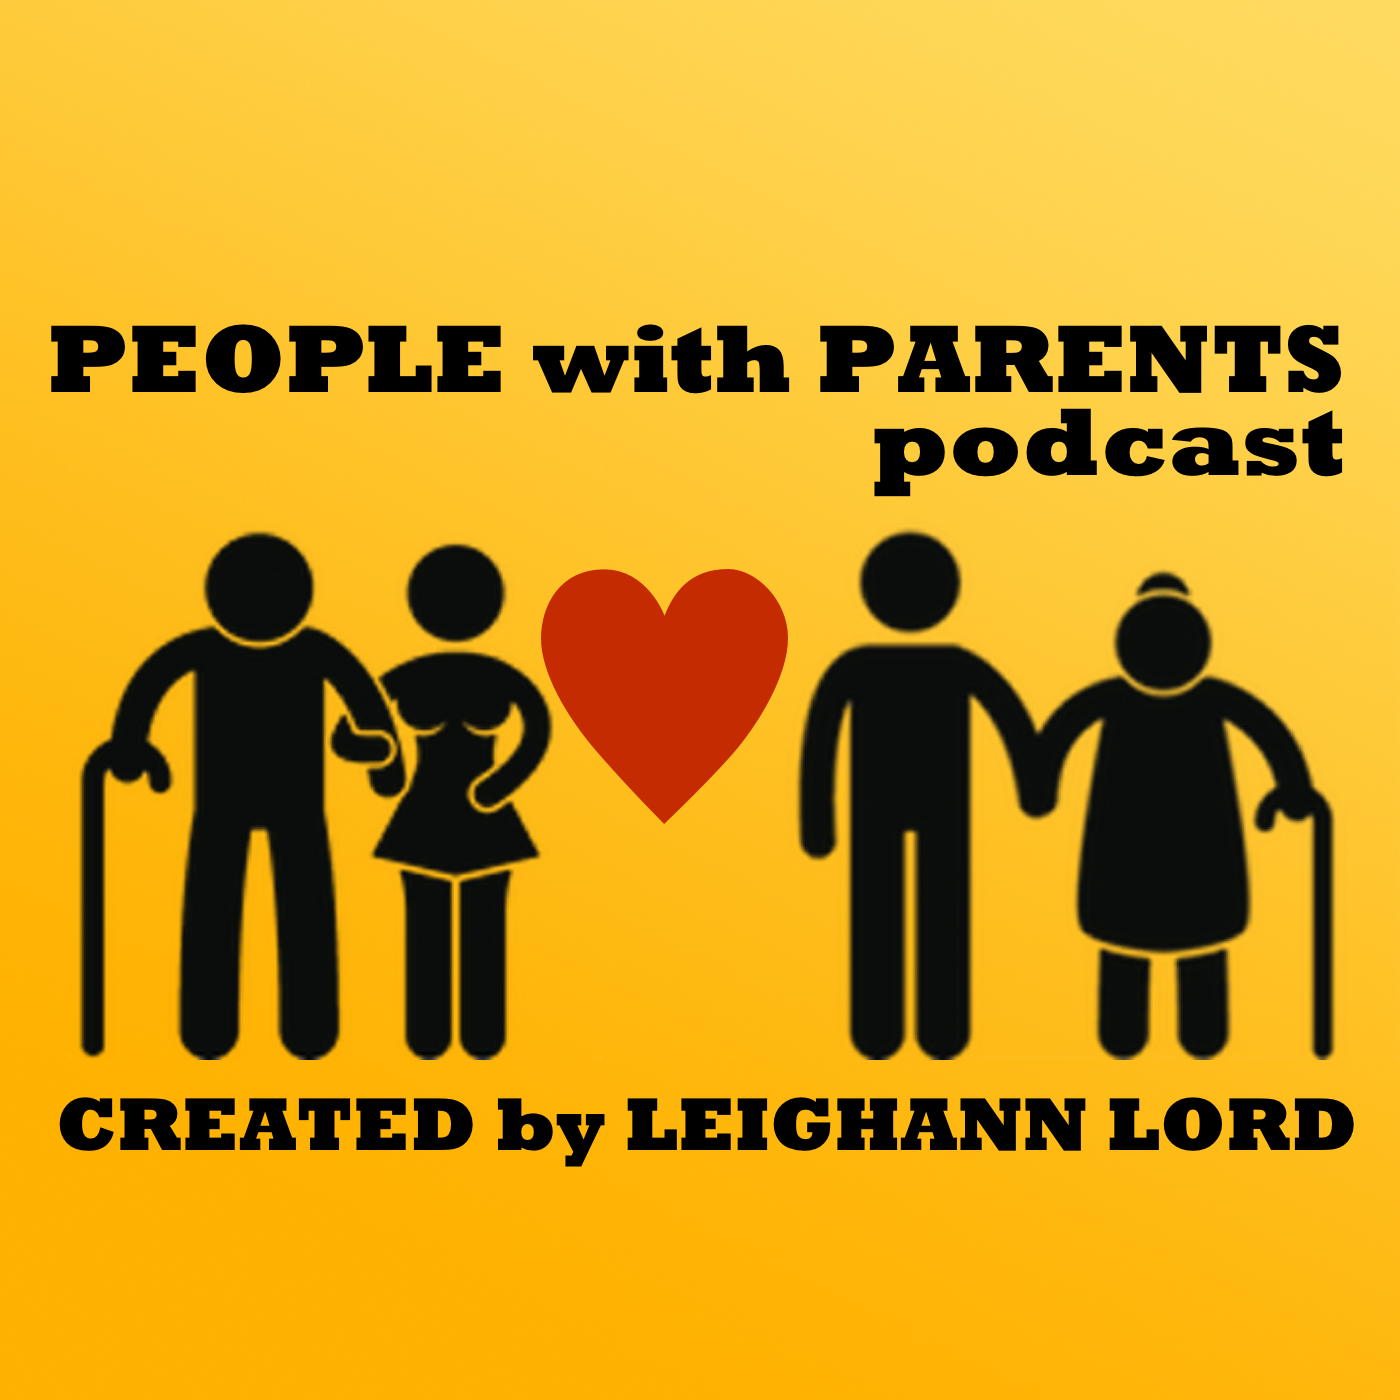 People with Parents Podcast show art